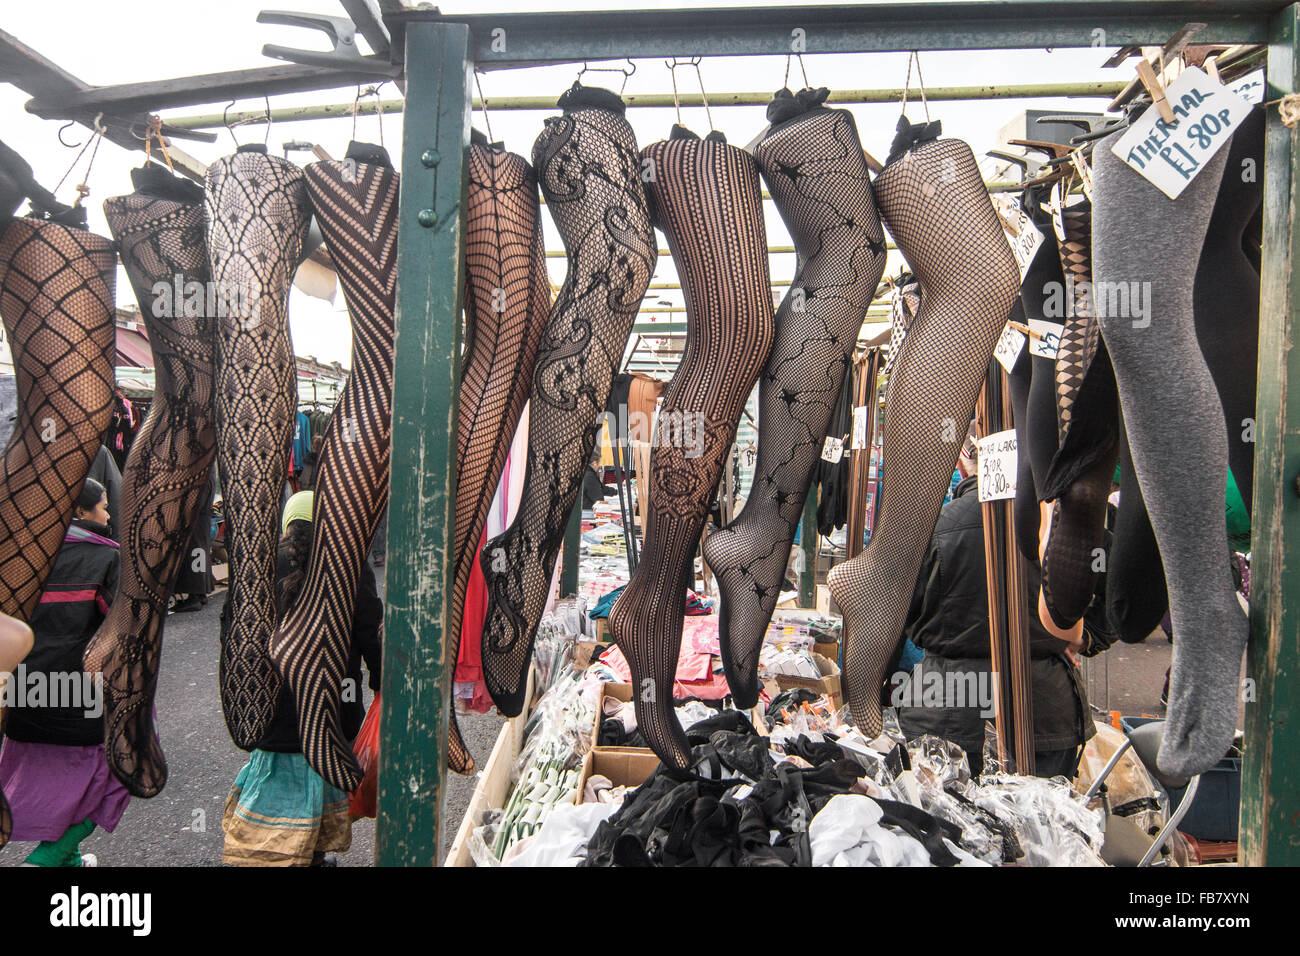 women's tights    Ridley Road Market,  Dalston - Stock Image